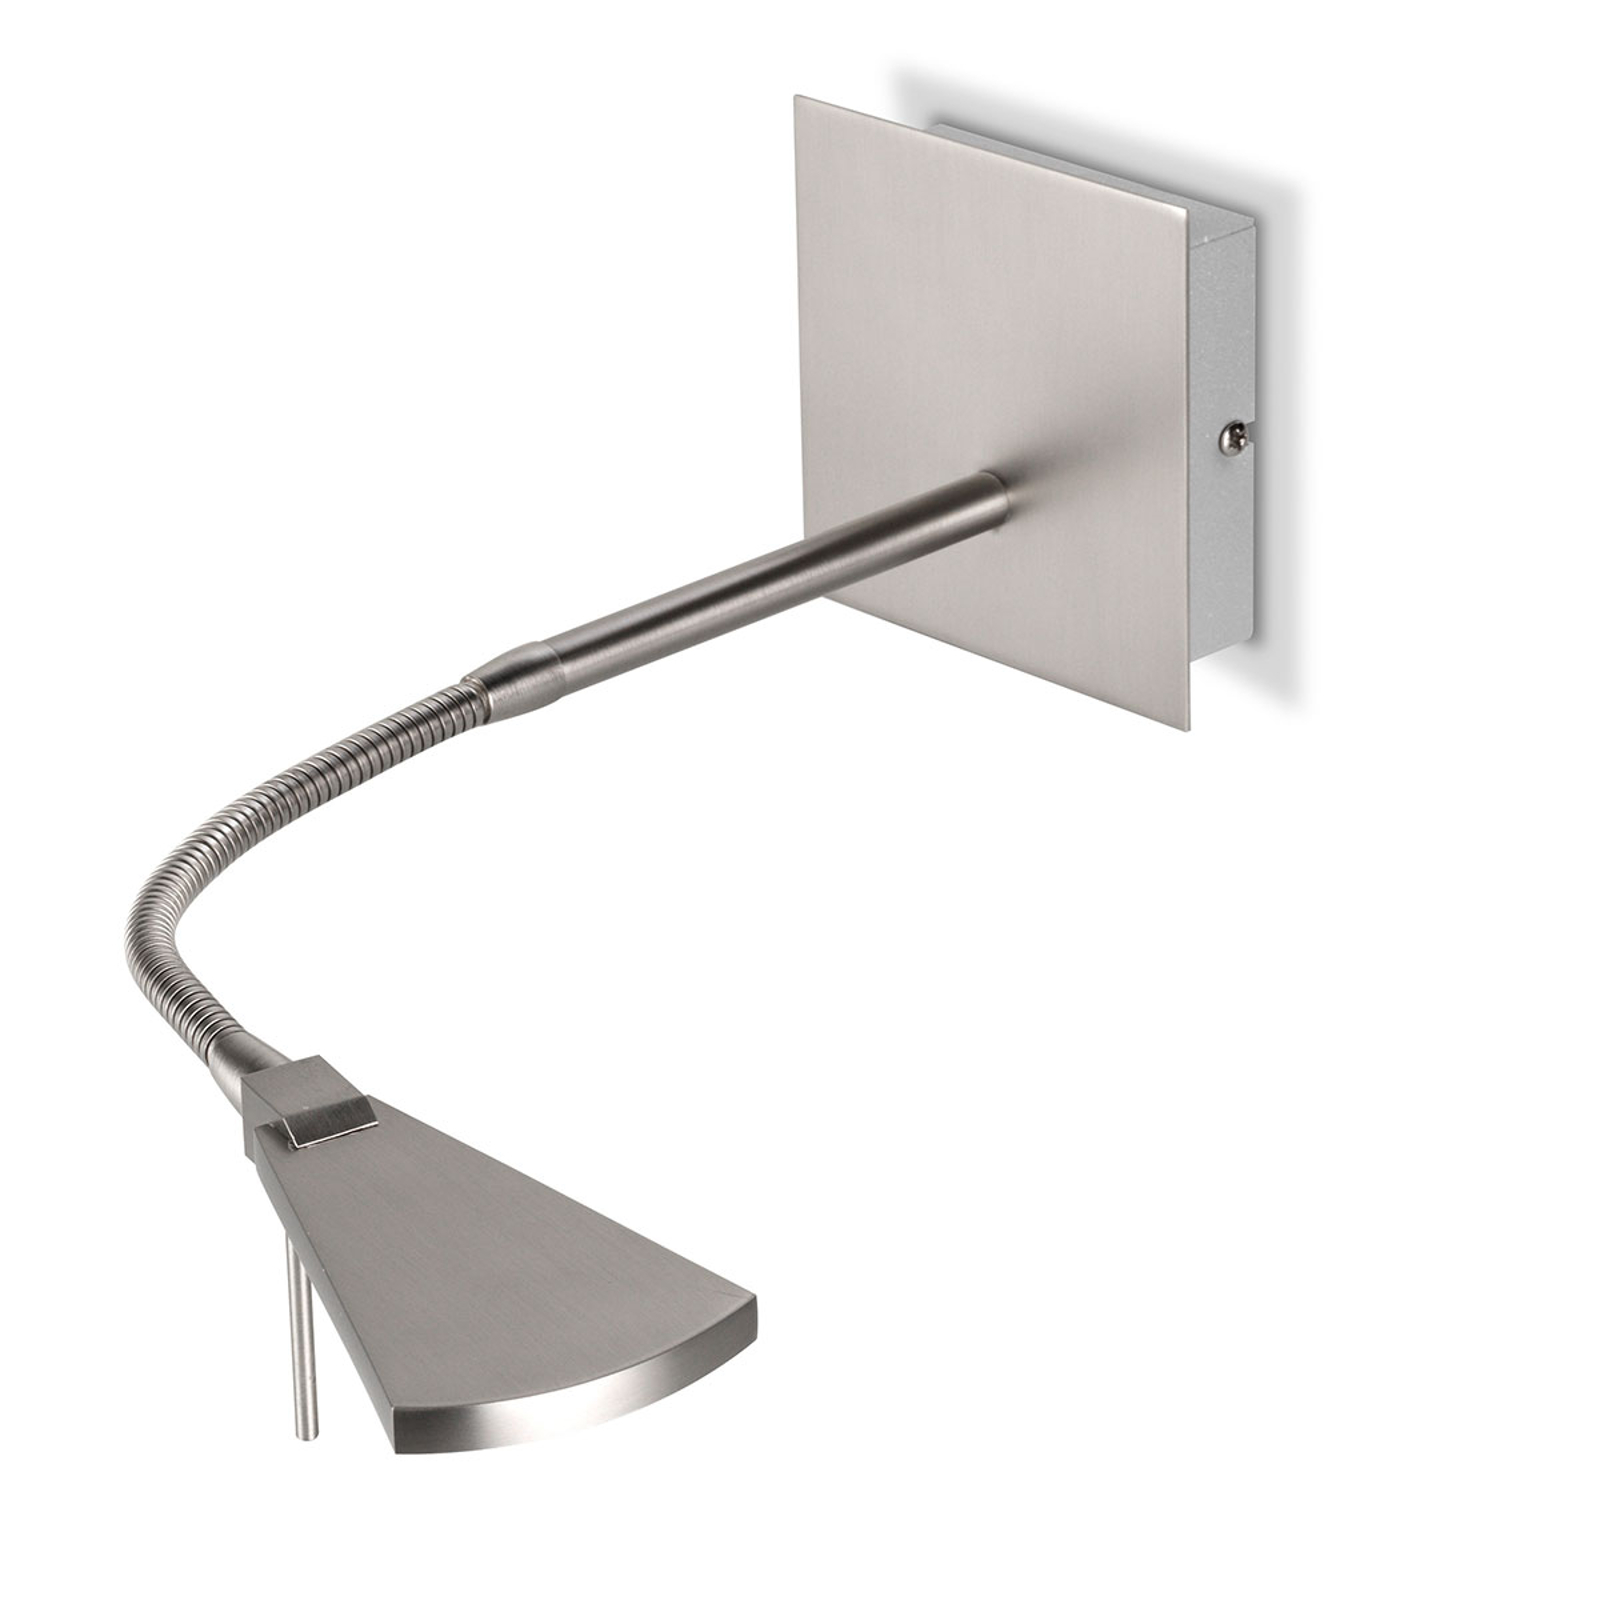 Flexible LED-Wandleuchte Nec, nickel matt